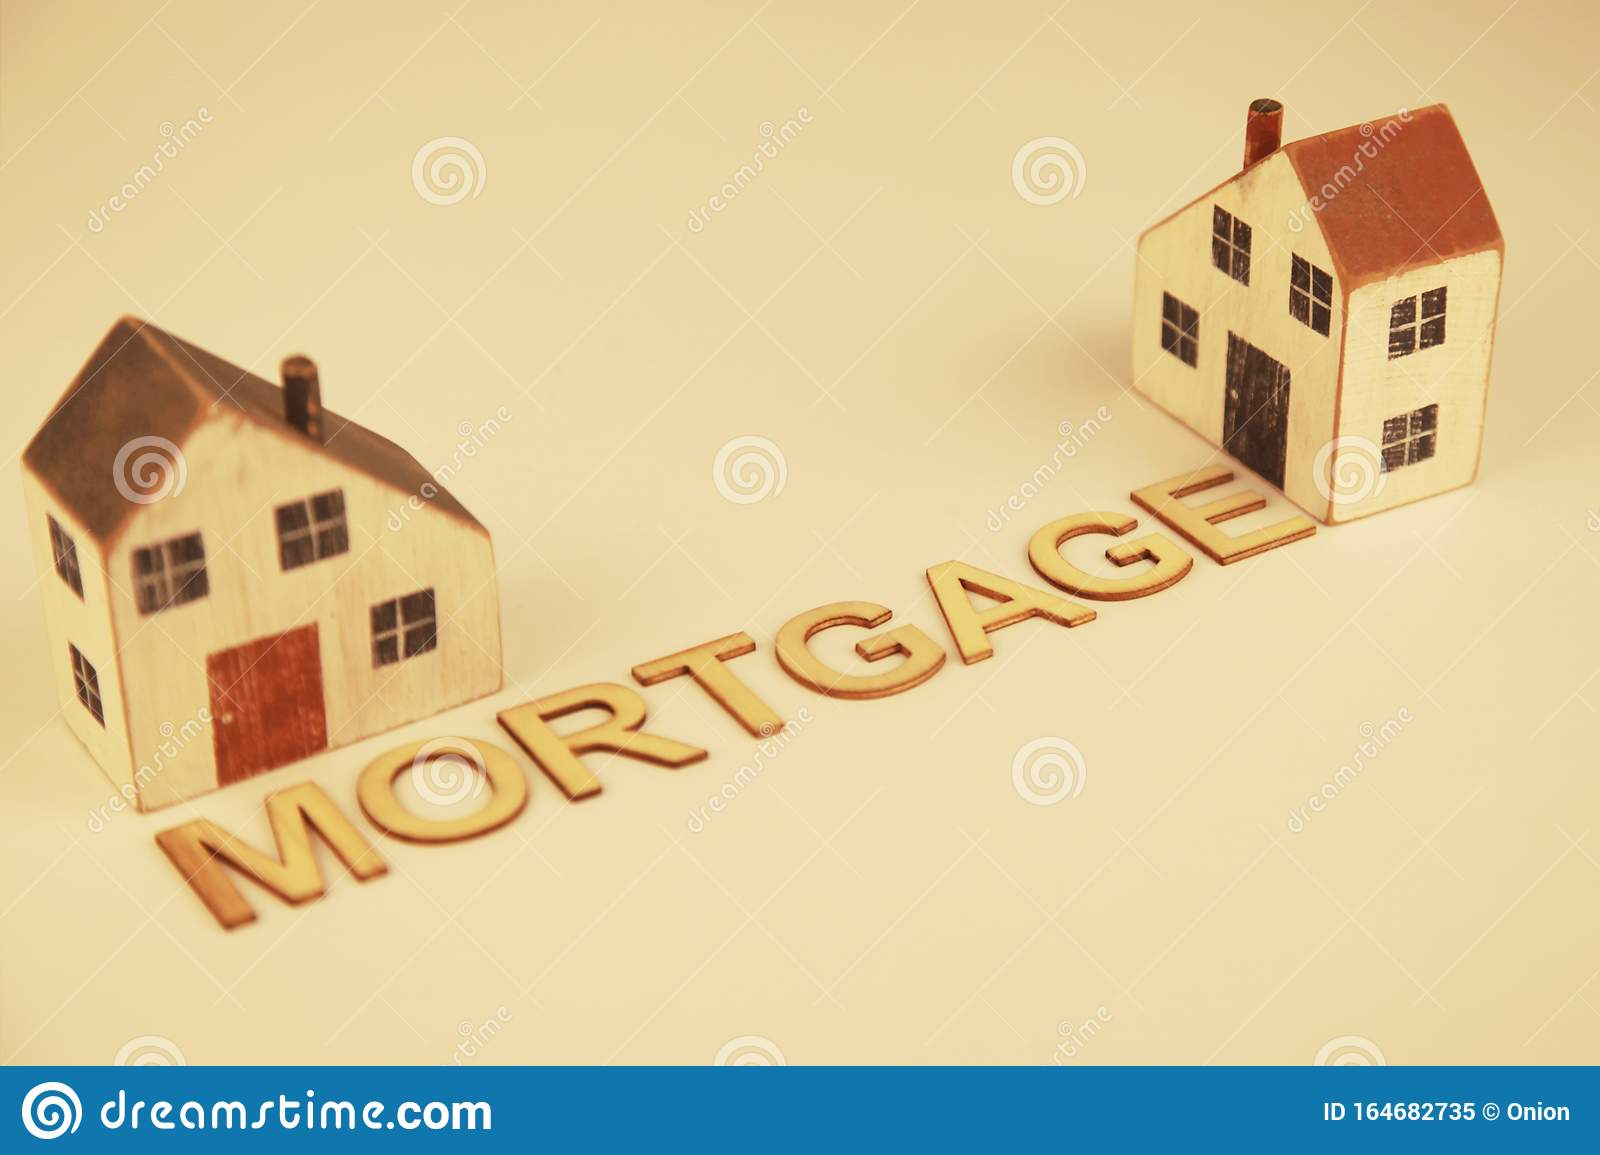 two-homes-mortgages-being-repaid-over-many-years-word-mortgage-164682735.jpg?profile=RESIZE_400x